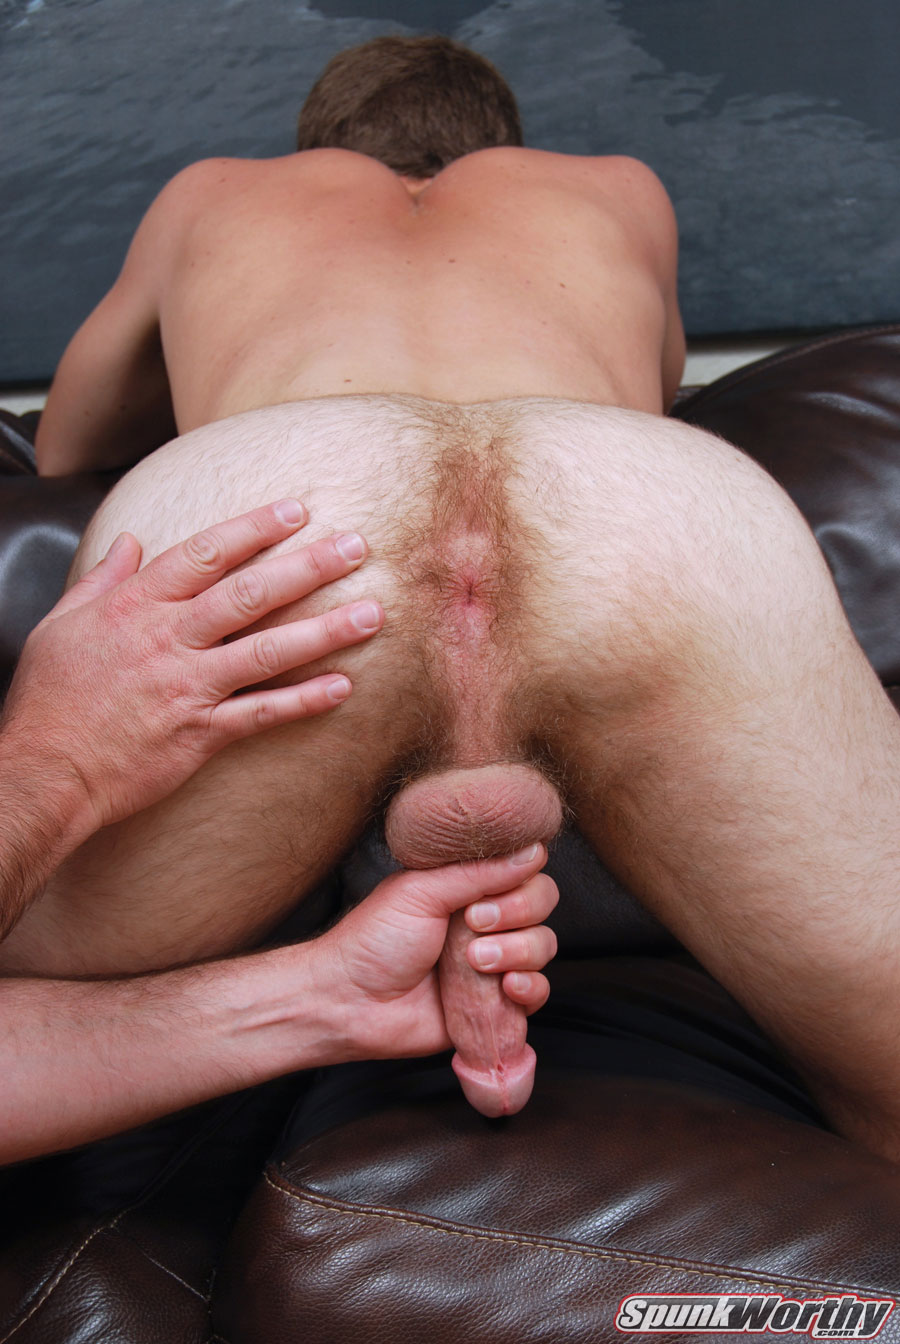 Spunkworthy Wes torrent gay straight blowjob 06 Straight Hairy College Dude Gets His Cock Sucked By A Gay Guy For Cash